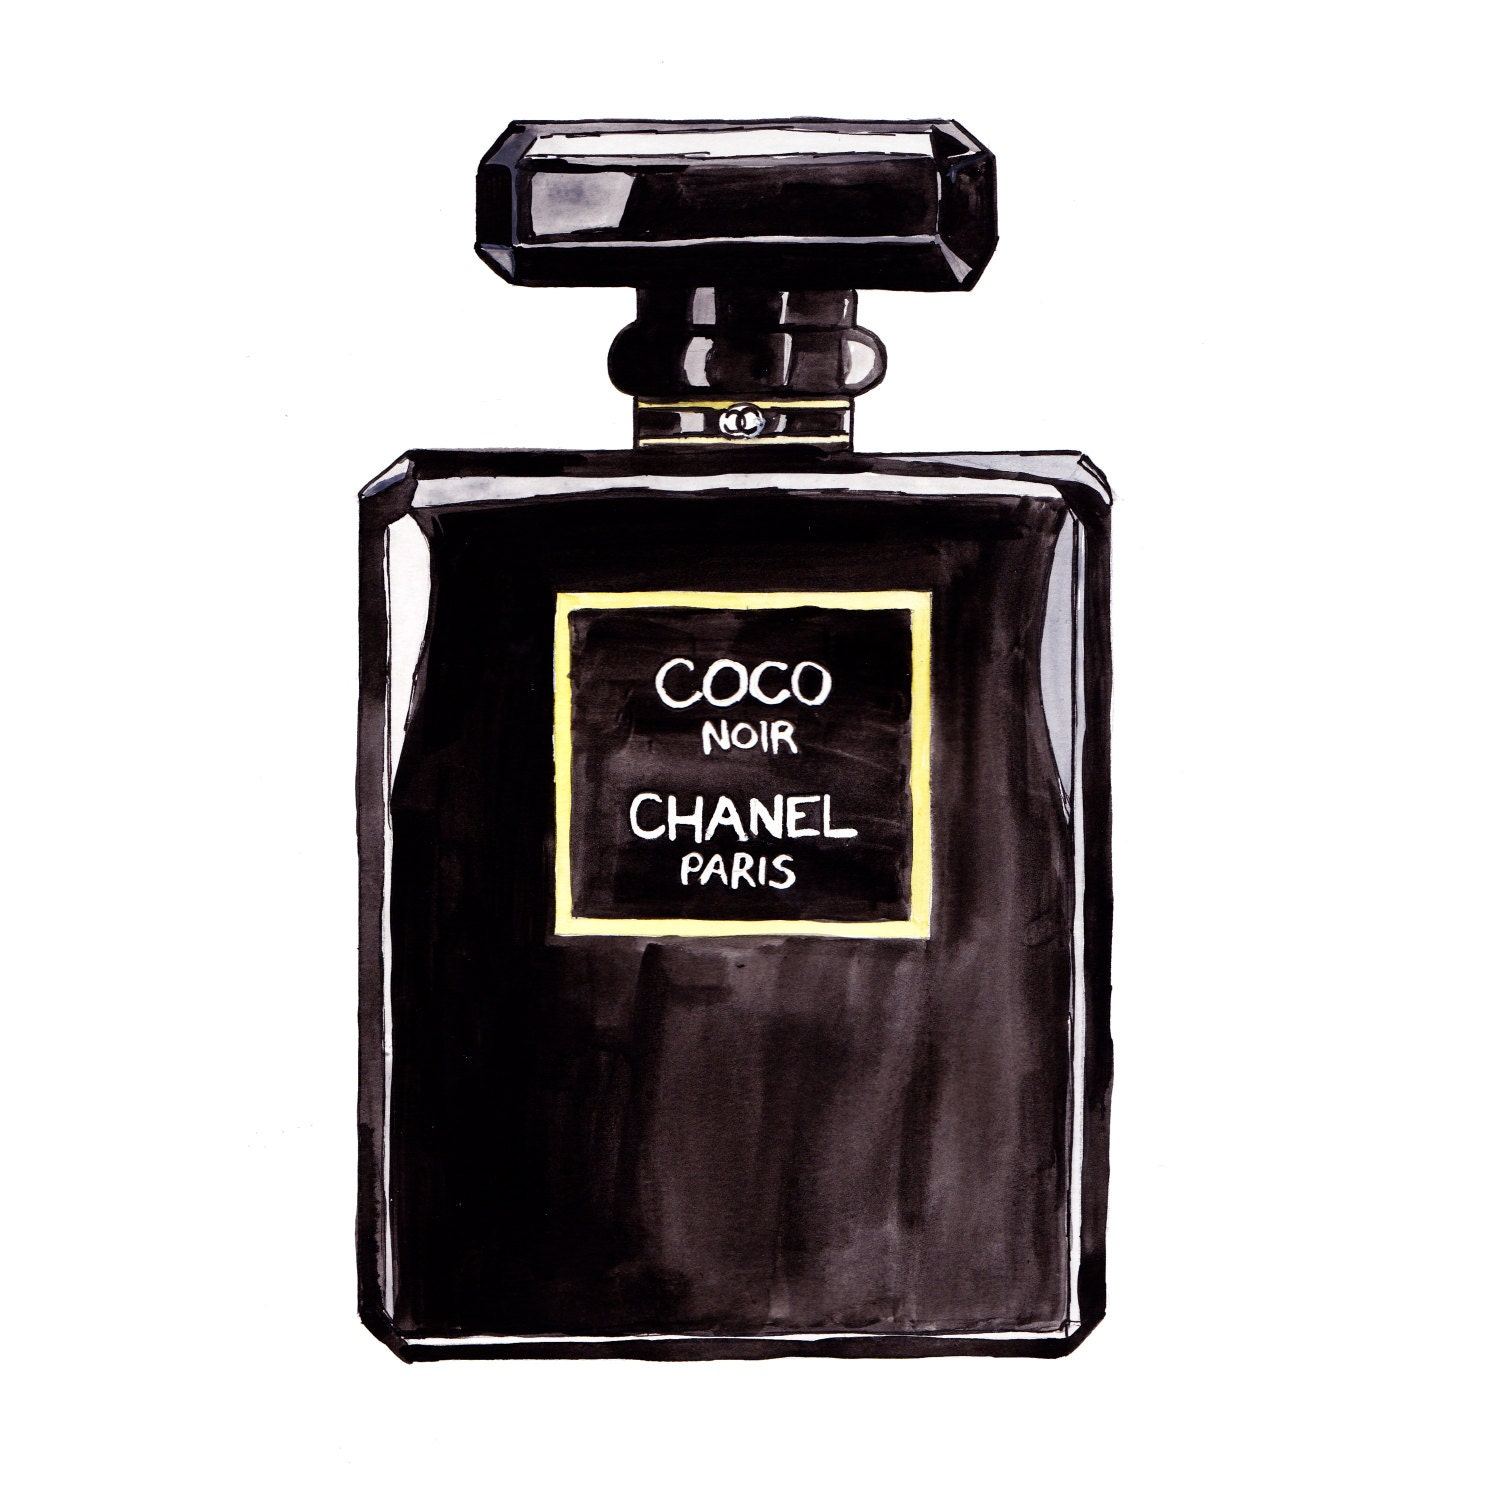 CHANEL NOIR: Hand Painted CHANEL Perfume Bottle Fashion by HOBBRY